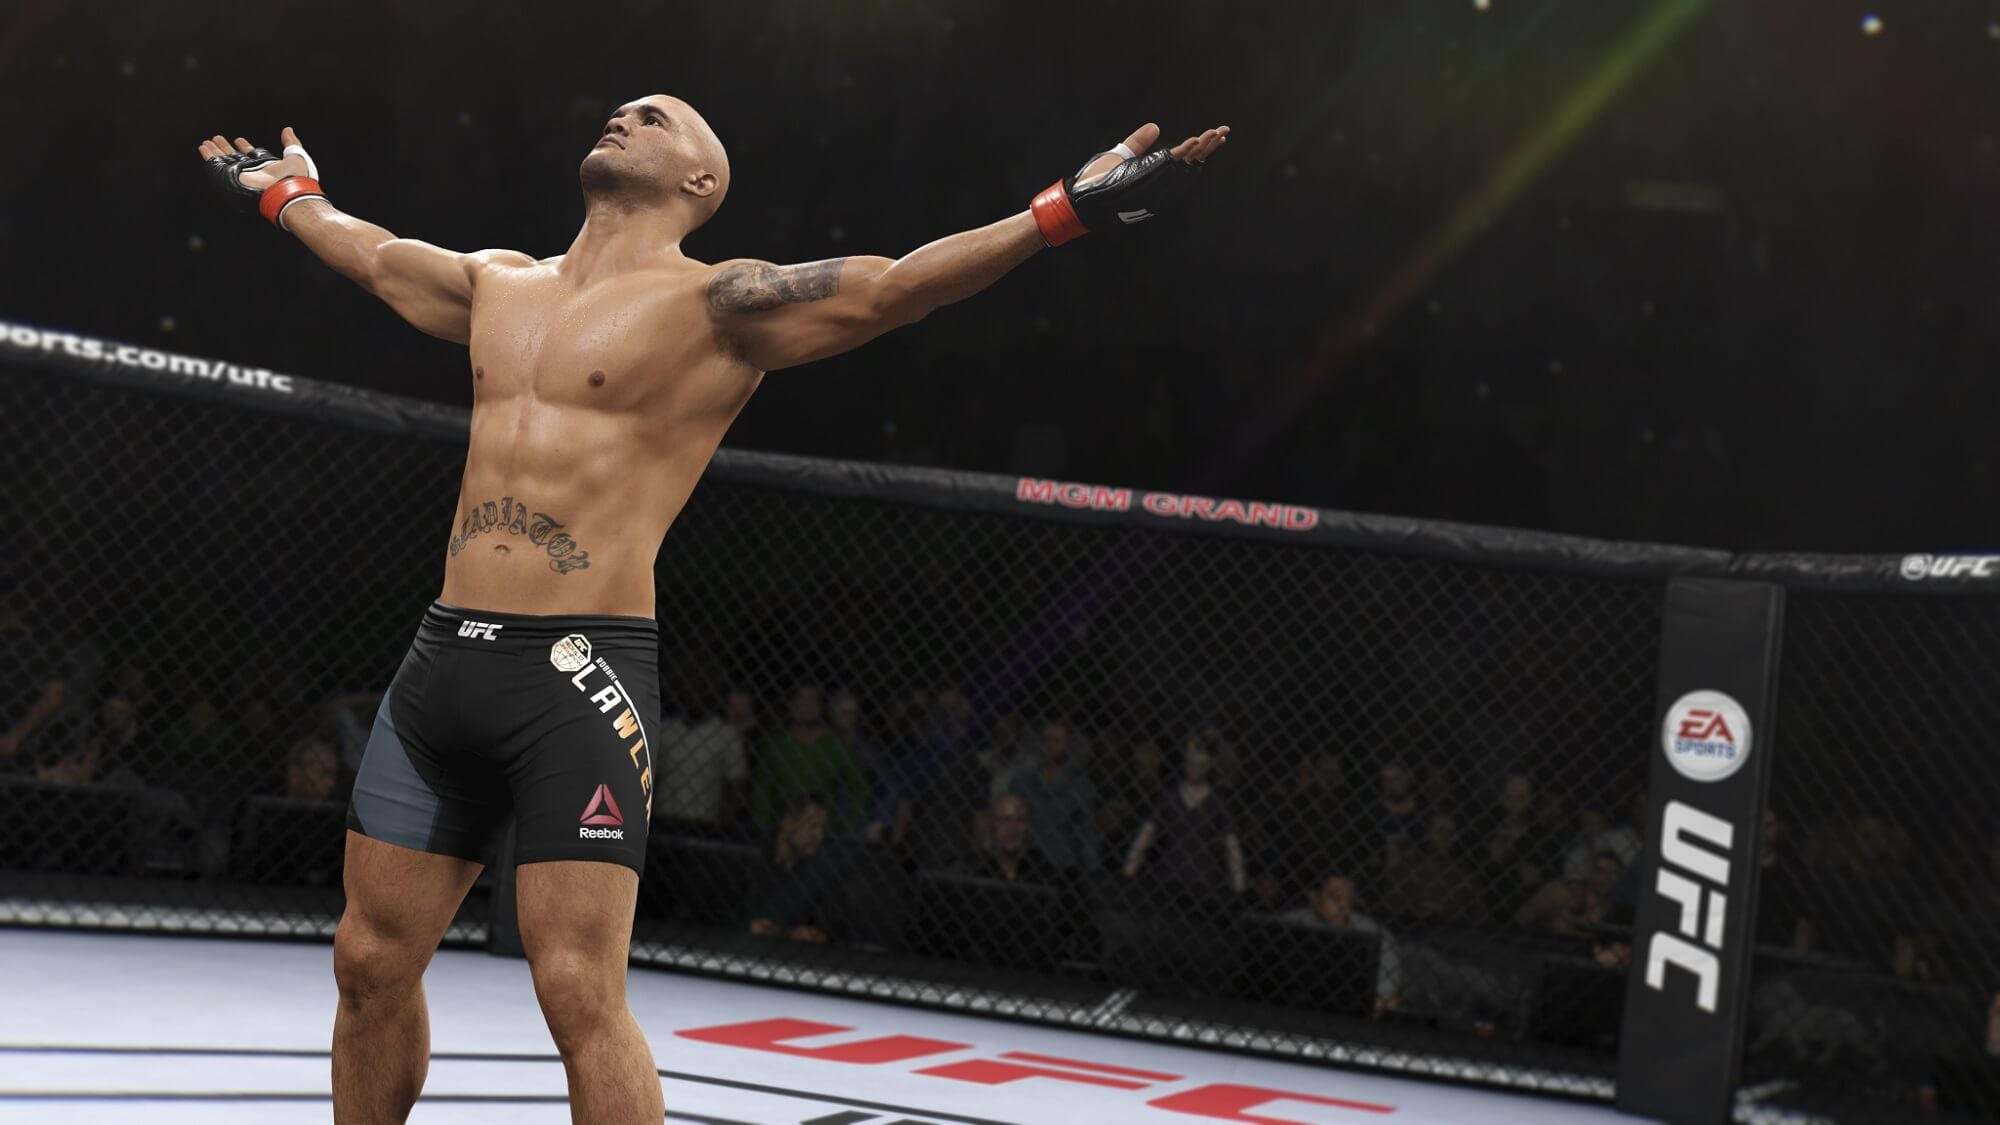 ea ufc 2 matchmaking surrey hook up